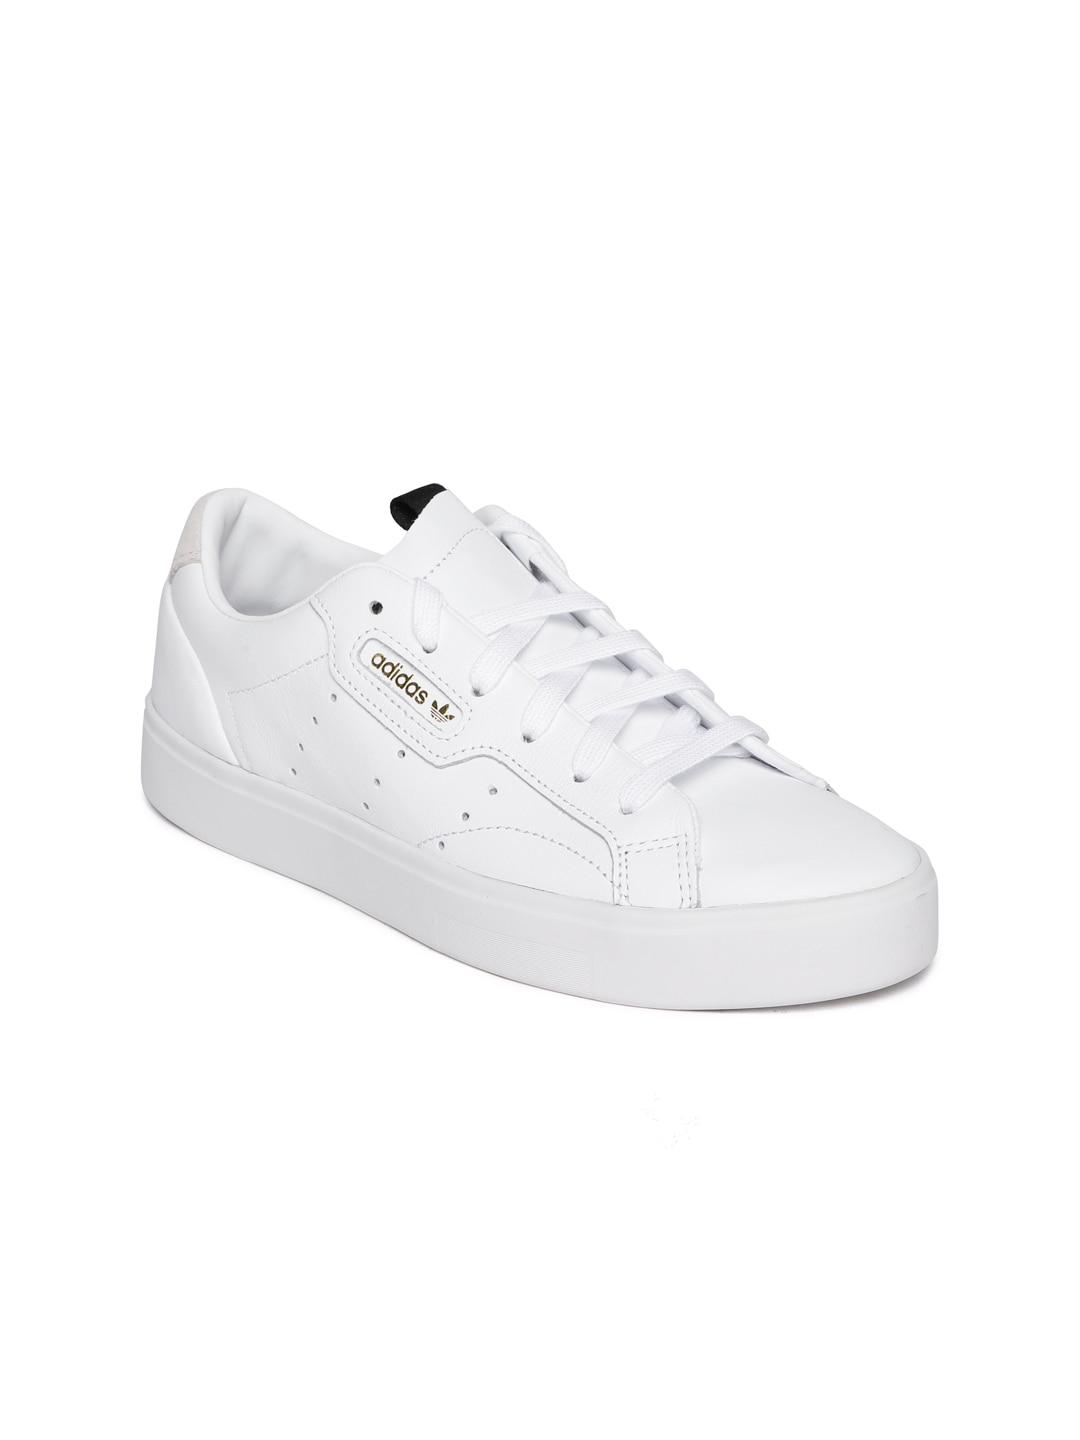 buy popular 8a636 02d6d Adidas Shoes - Buy Adidas Shoes for Men   Women Online - Myntra